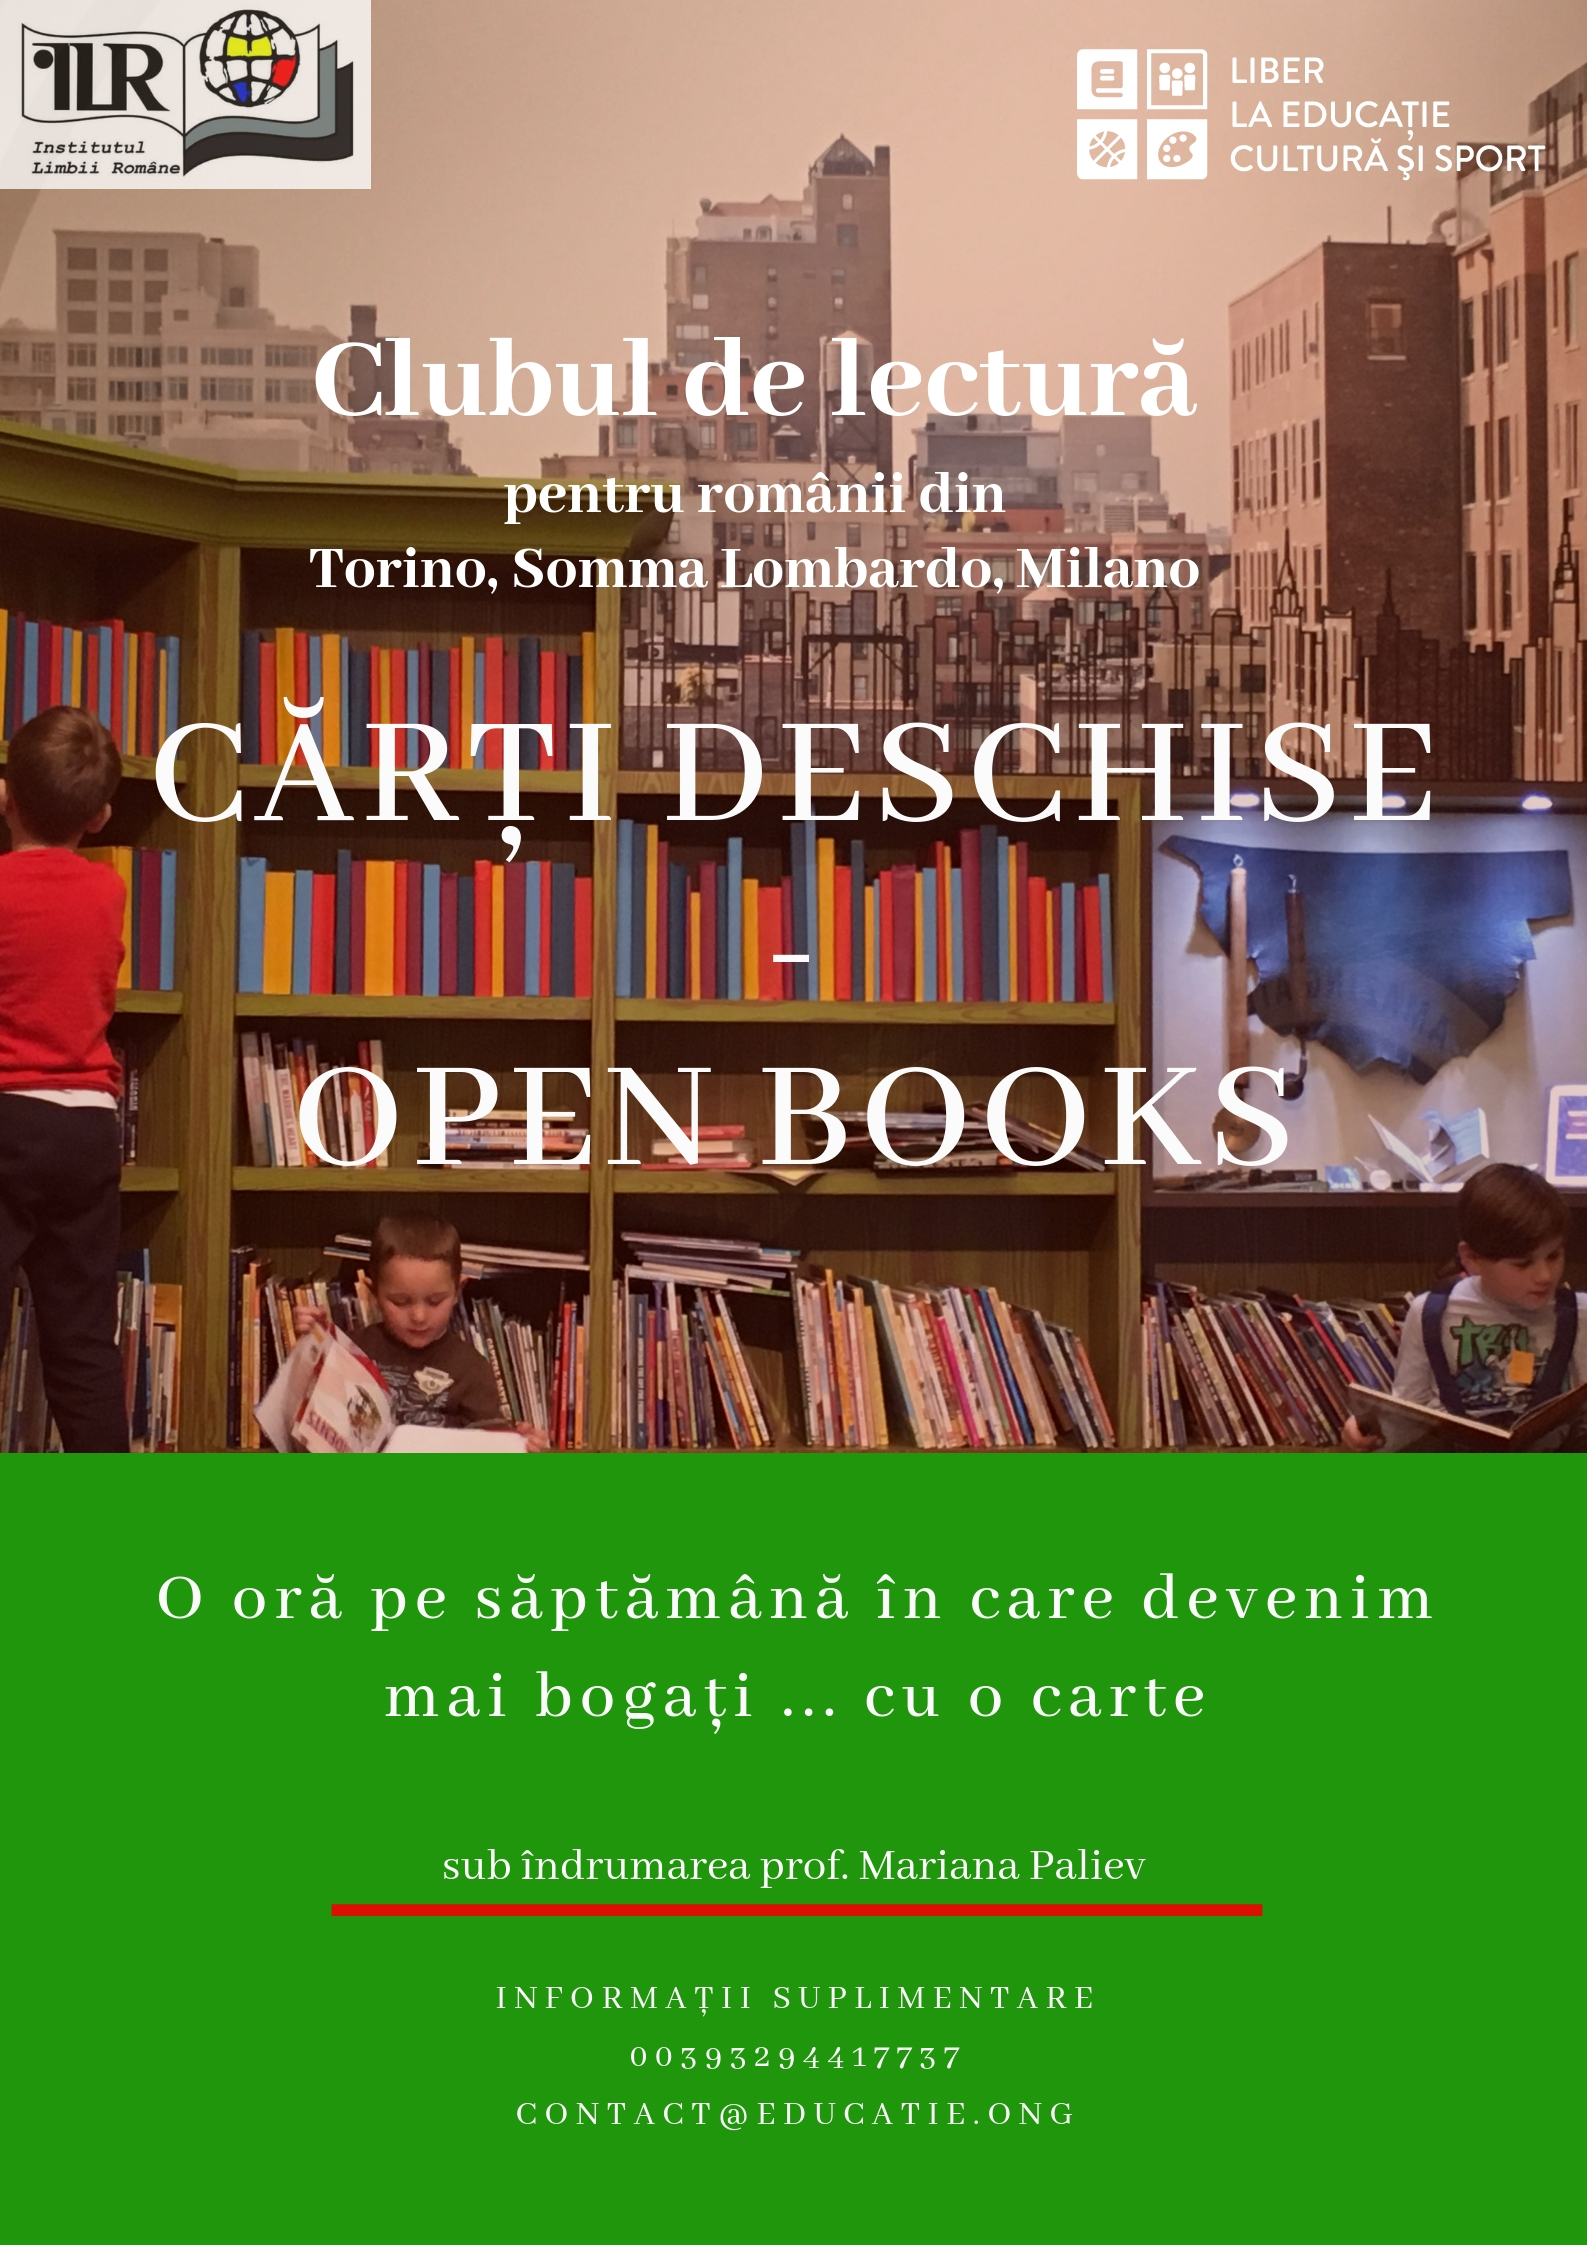 Cărți deschise-open books - Italia.jpg